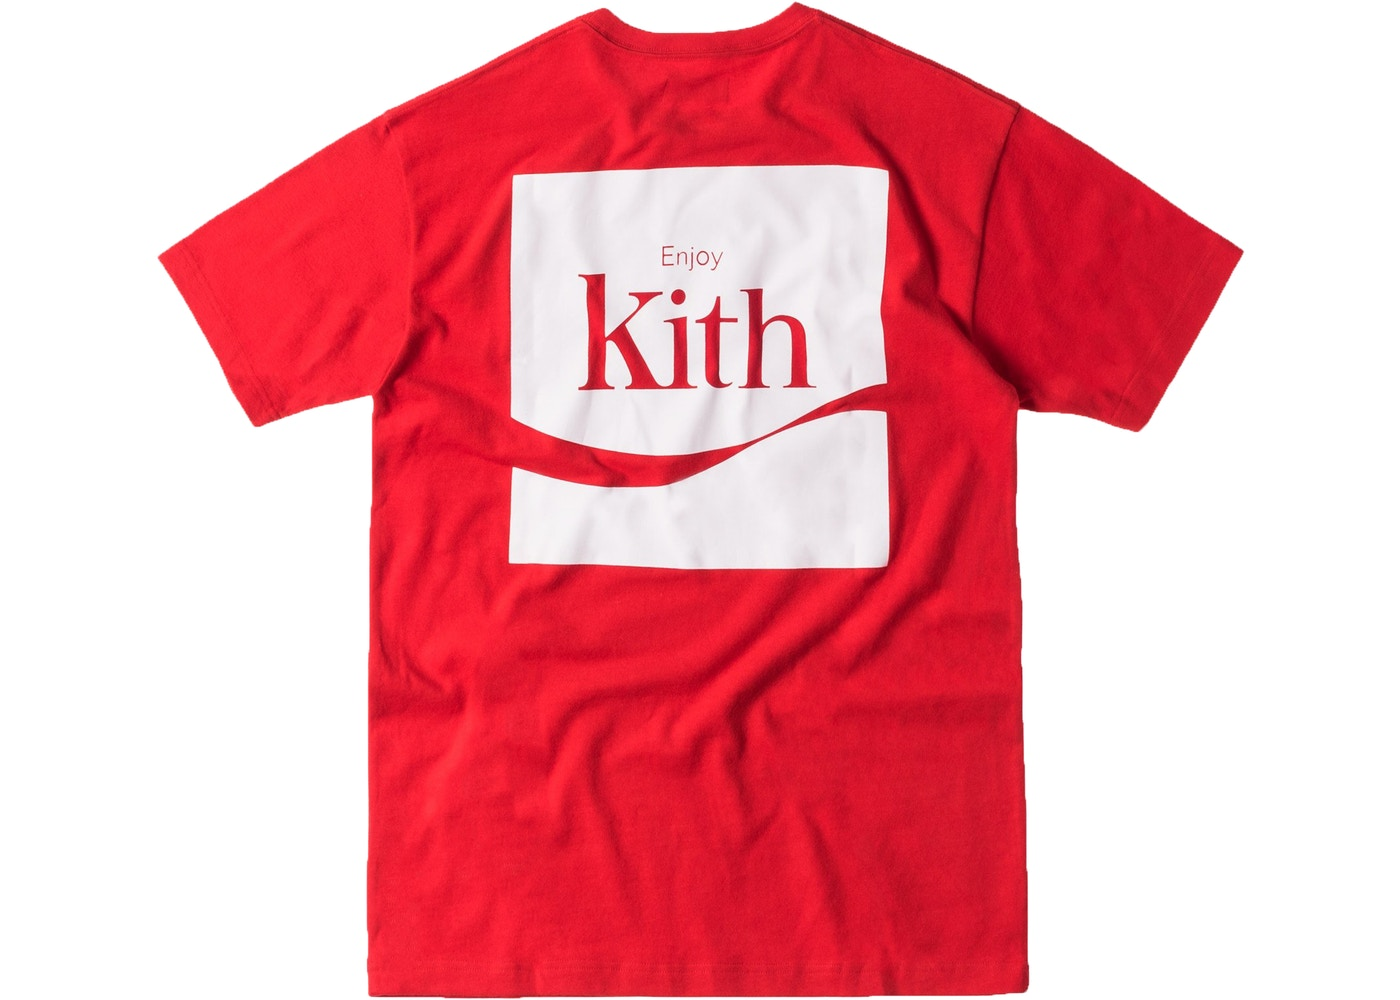 24febdca230c8 Kith Coca Cola Enjoy Tee Red - SS17